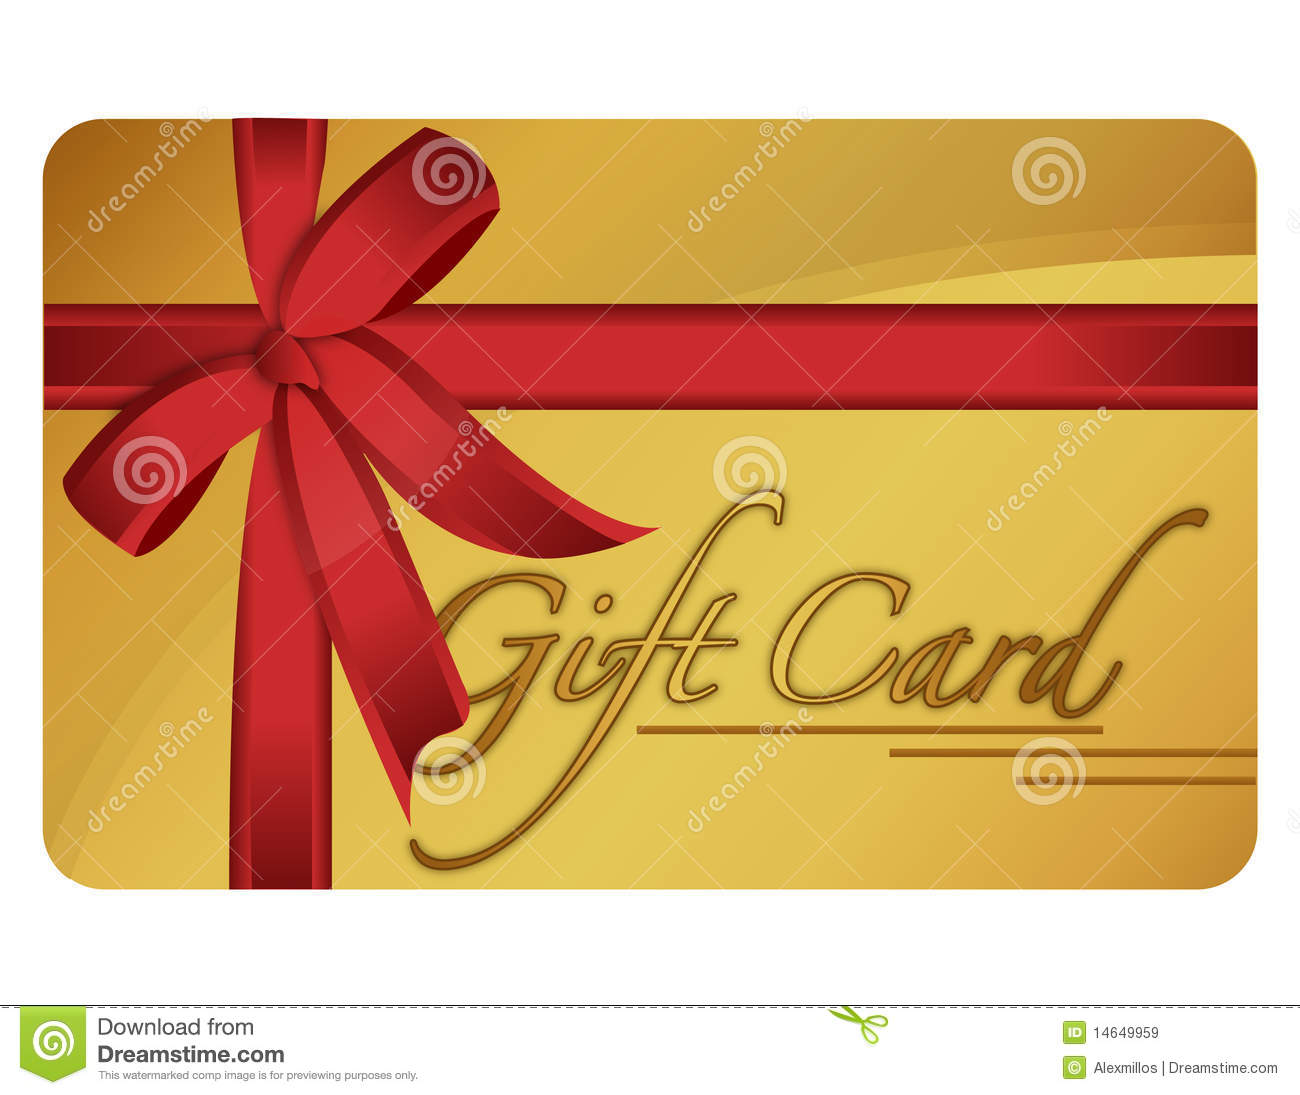 Gift card images free yeniscale gift card images free negle Images